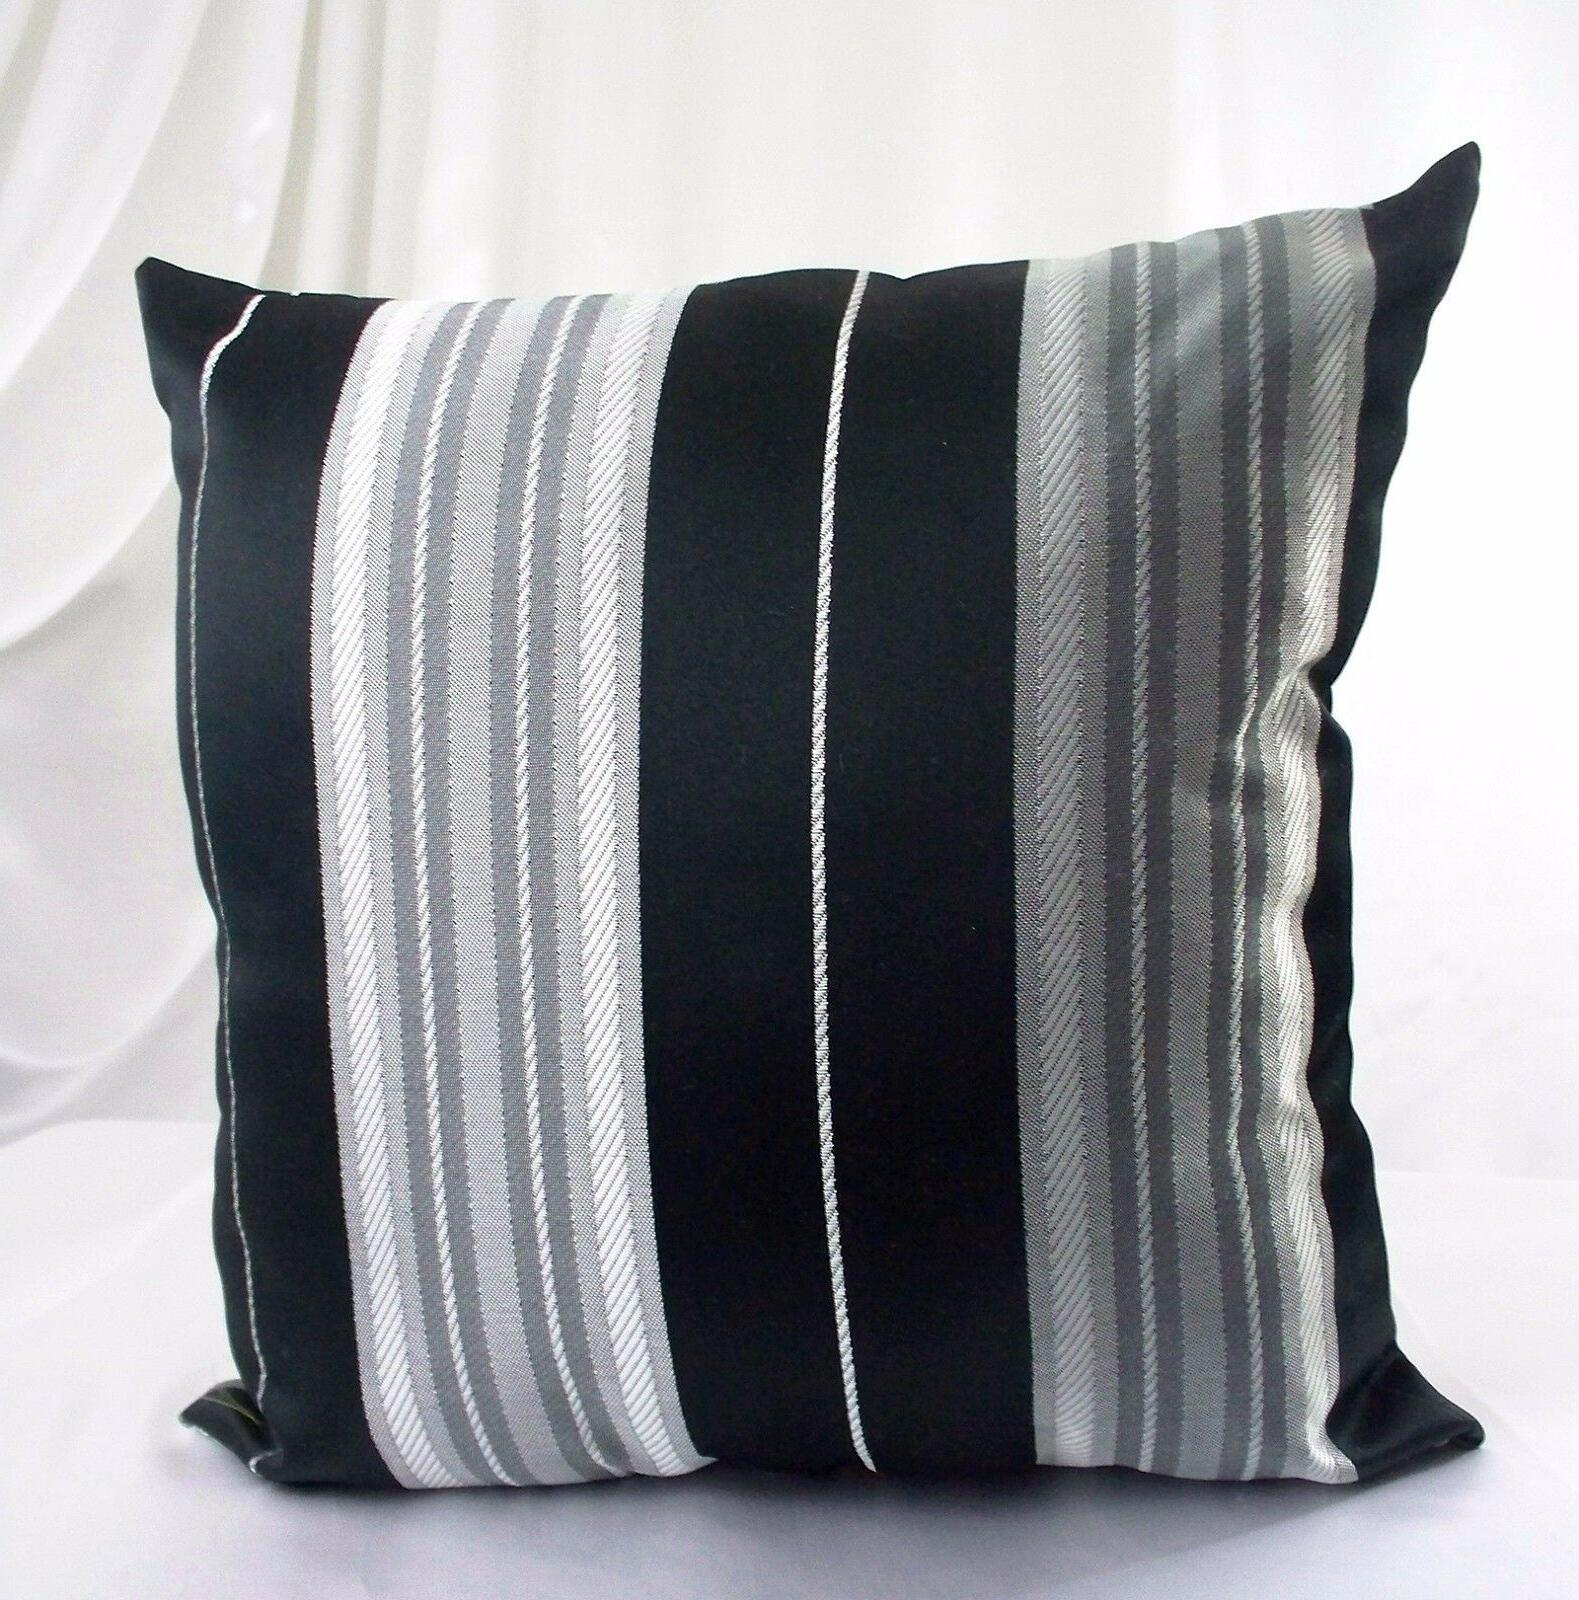 Pillow cases Cover Black White Cushion Throw Sham Sofa